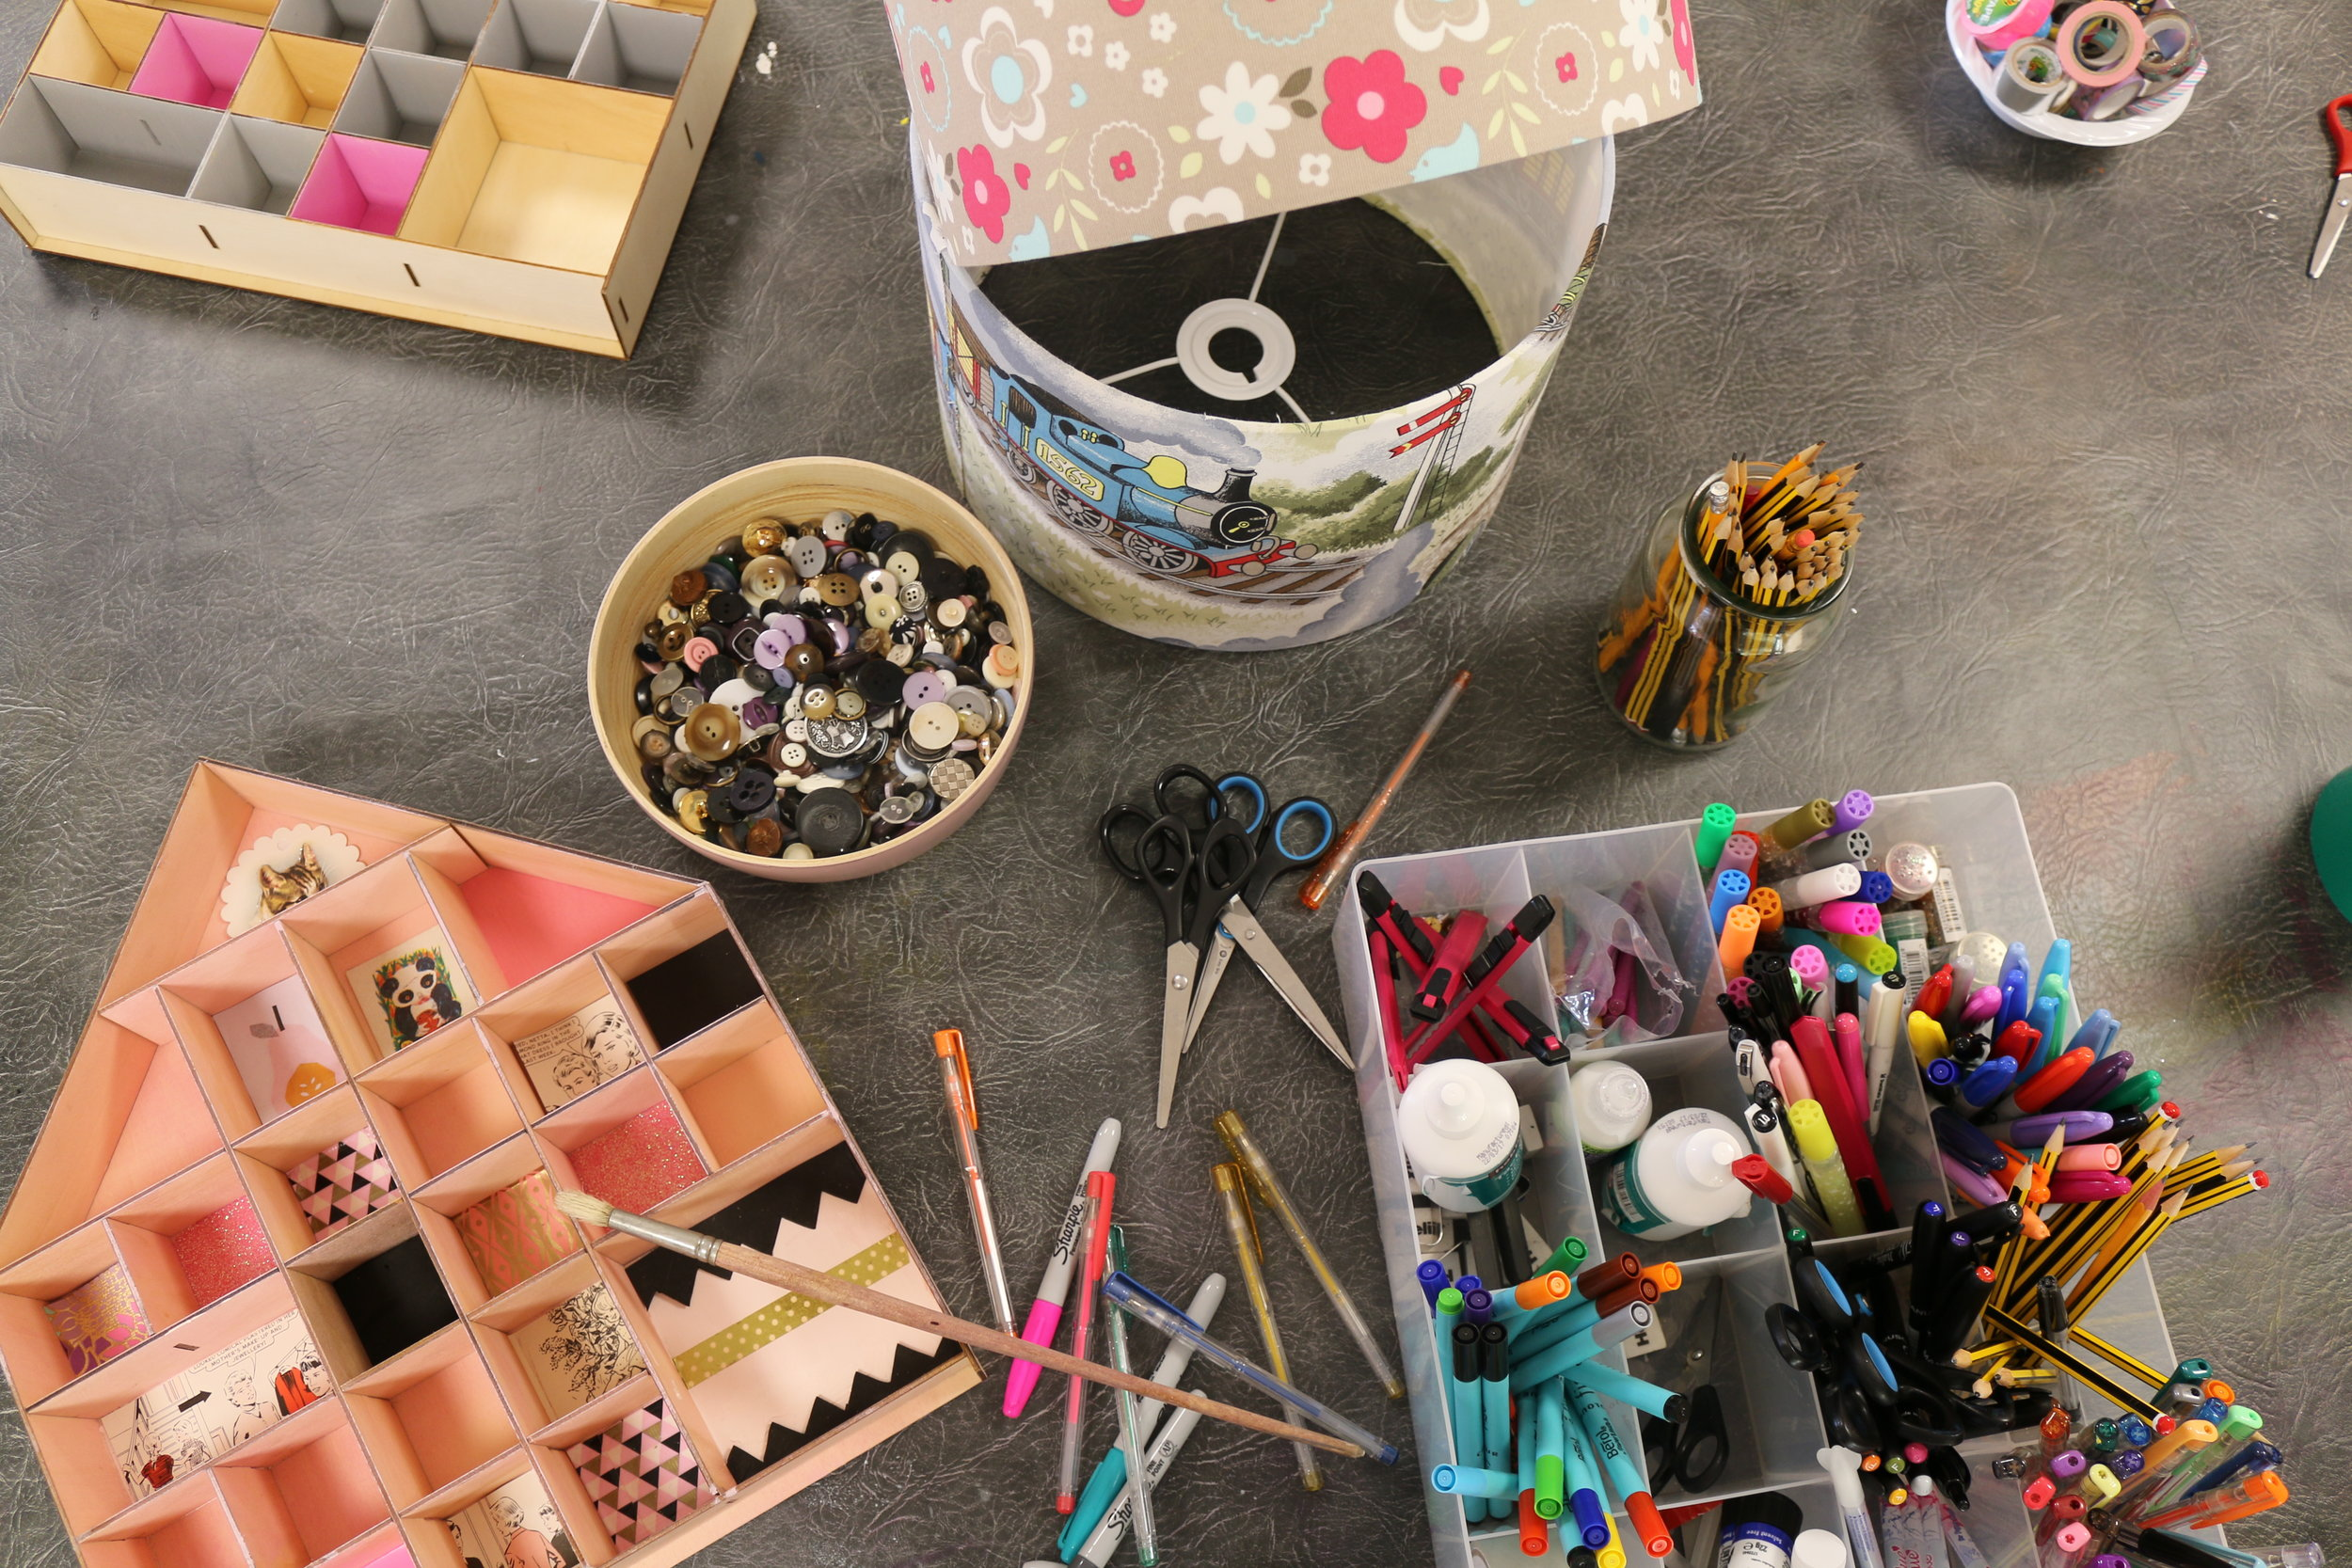 We have cupboards full of materials so you can get as colourful and creative as you want!